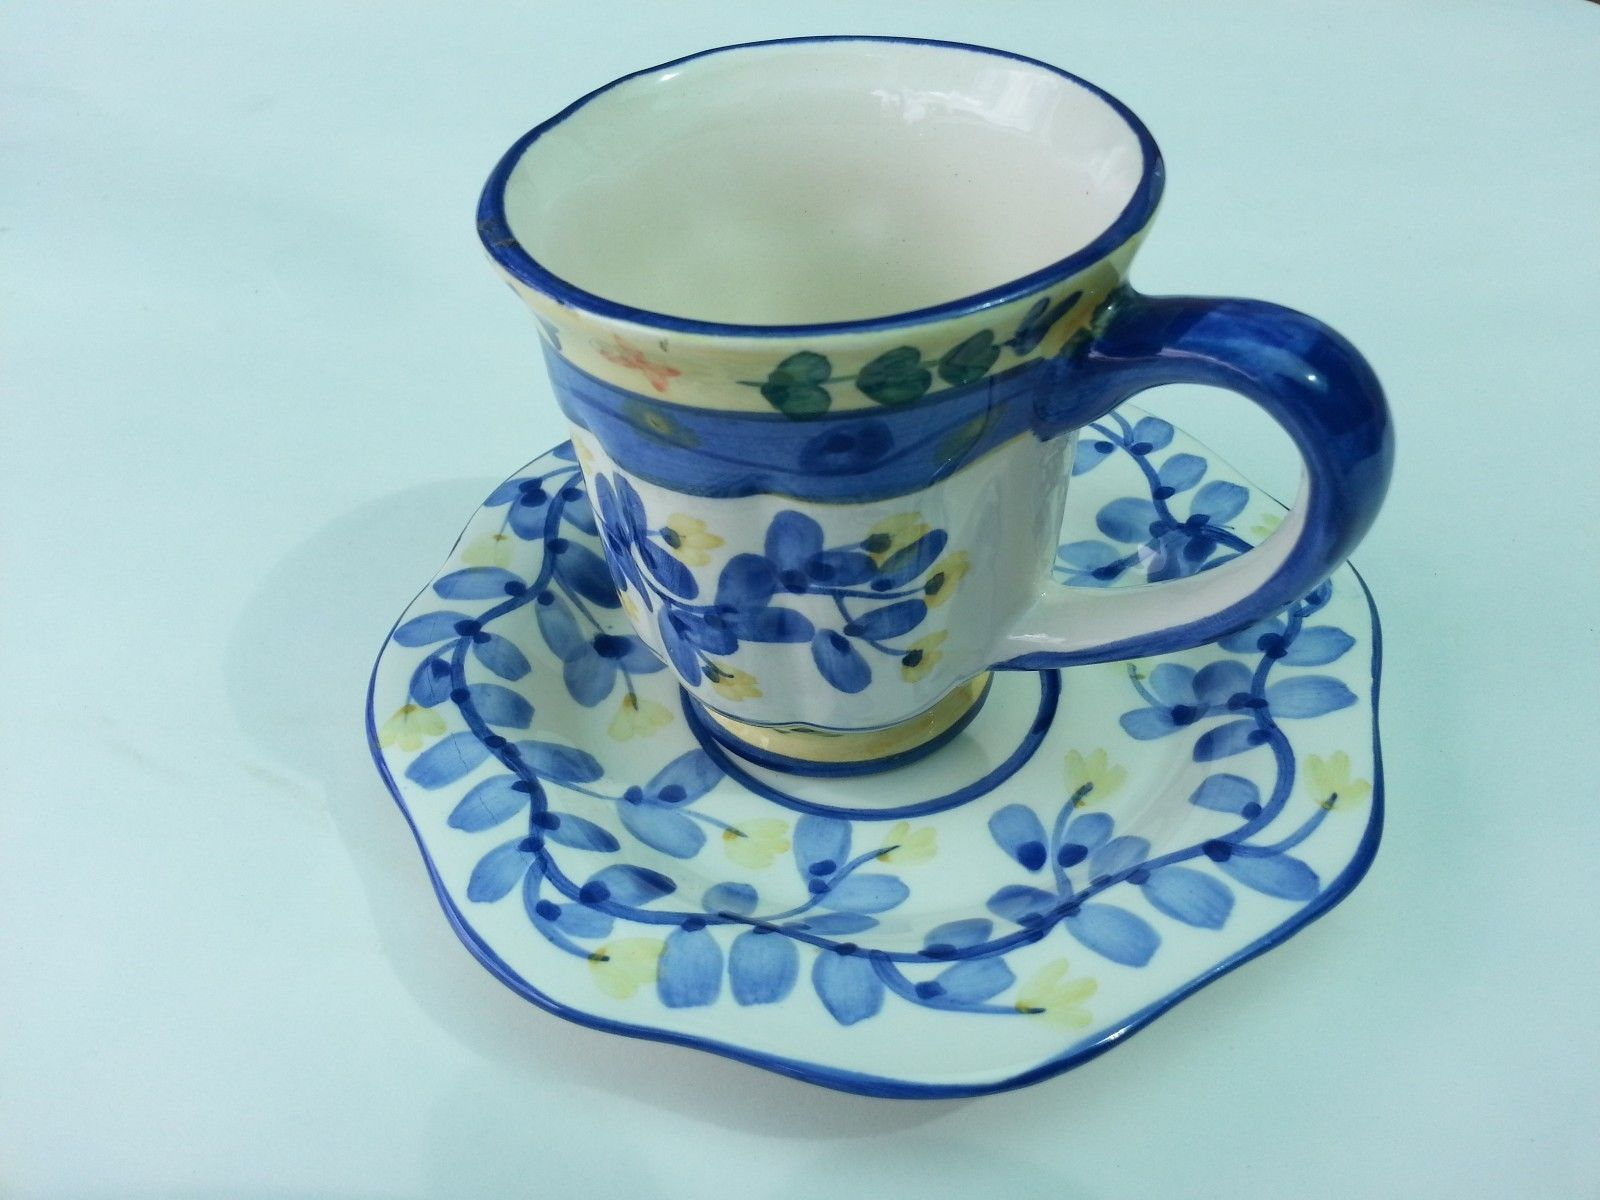 Primary image for  ceramic tea coffee cup mug with saucer white and blue floral